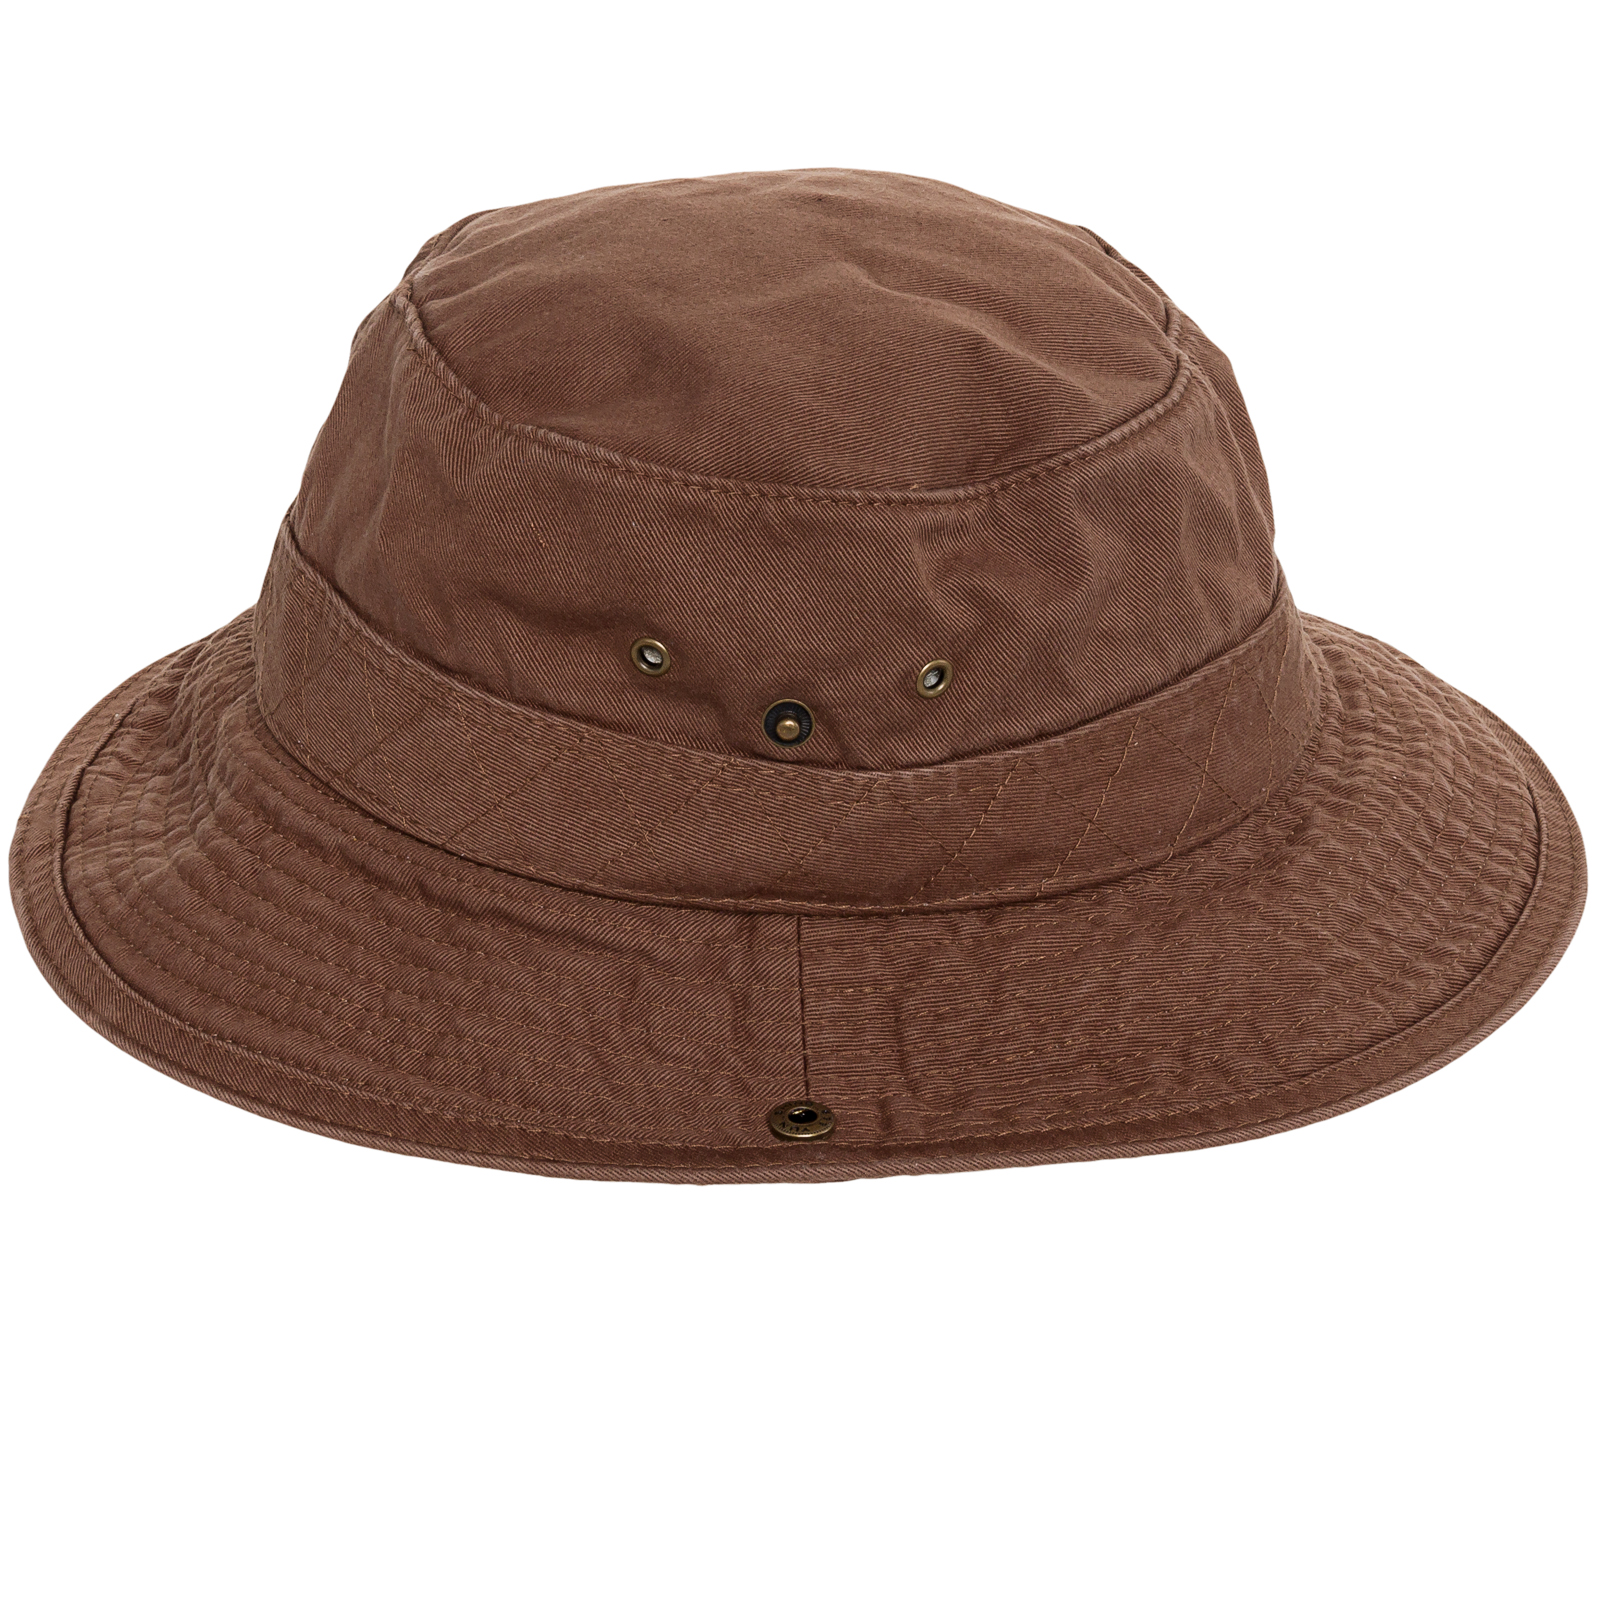 pacific men Men's hats at macy's come in all styles and sizes shop dorfman pacific gloves, hats, scarves and more warm accessories for men today.